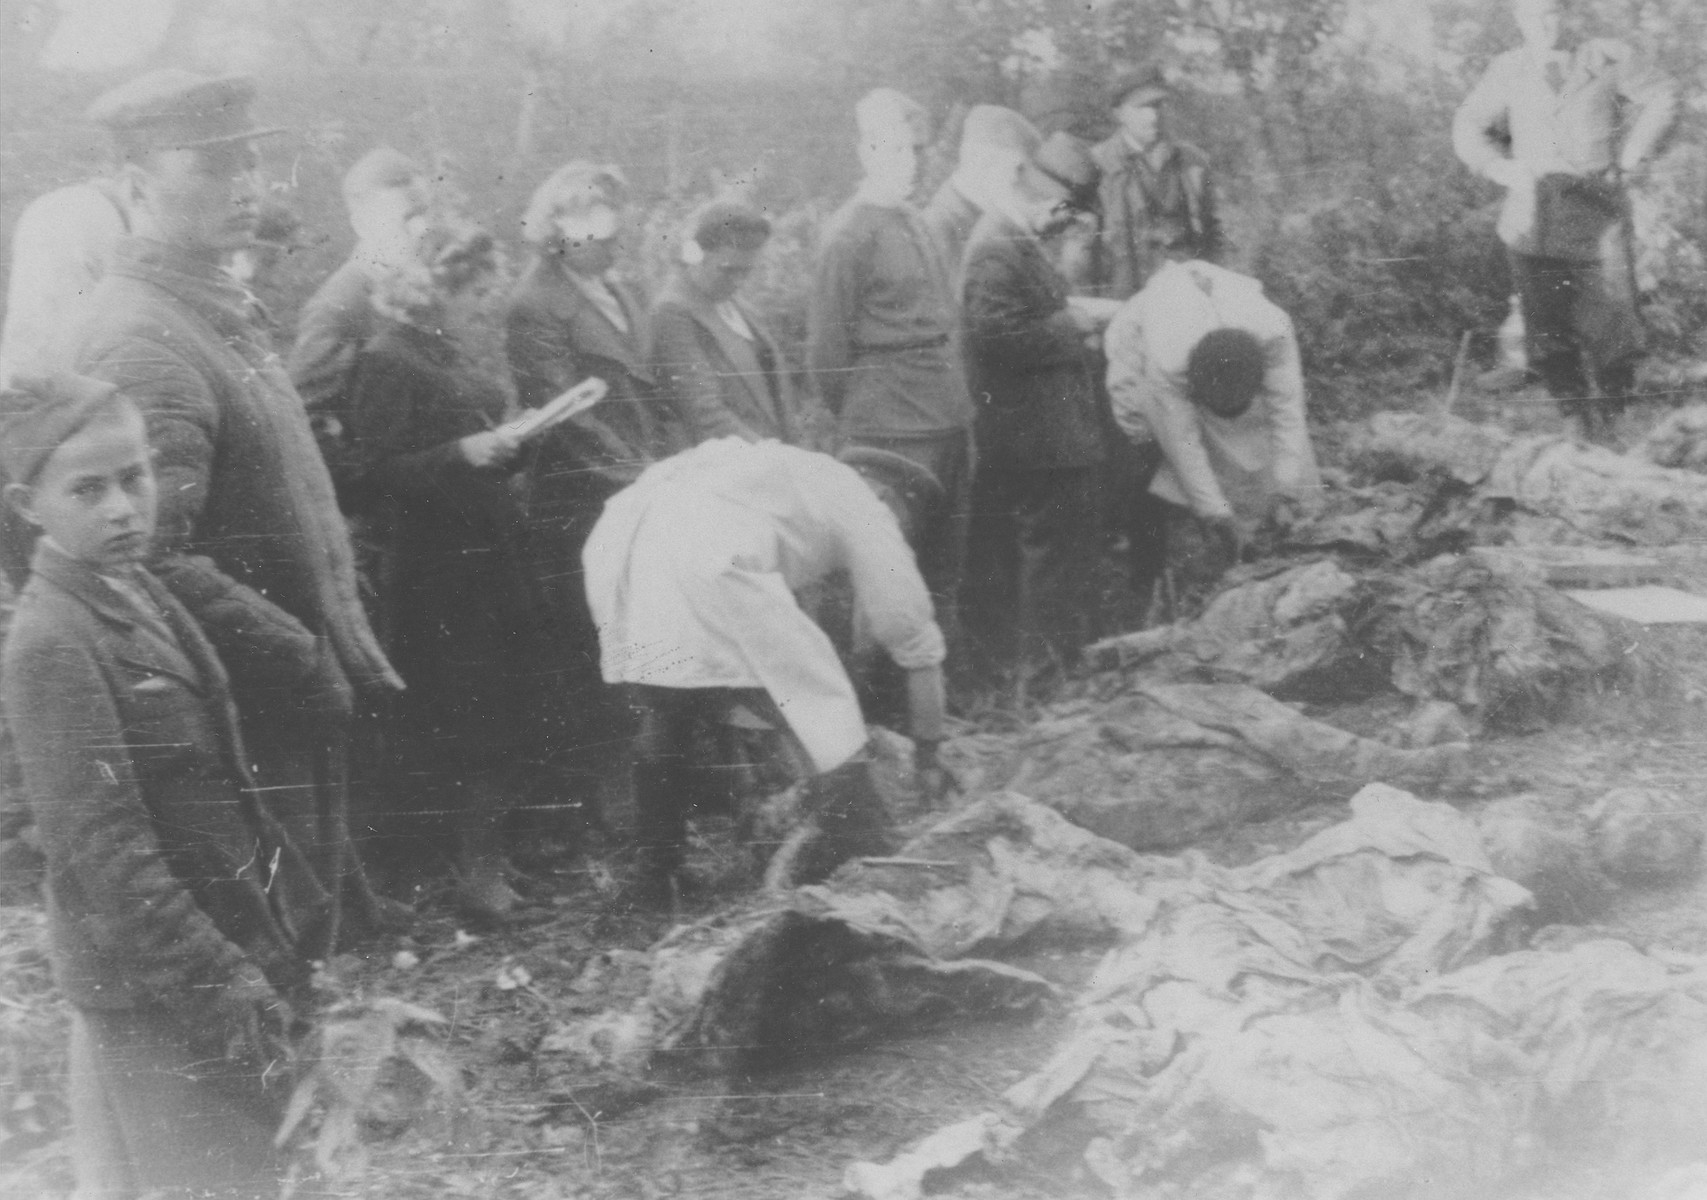 Soviets exhume a mass grave in Zloczow shortly after the liberation.